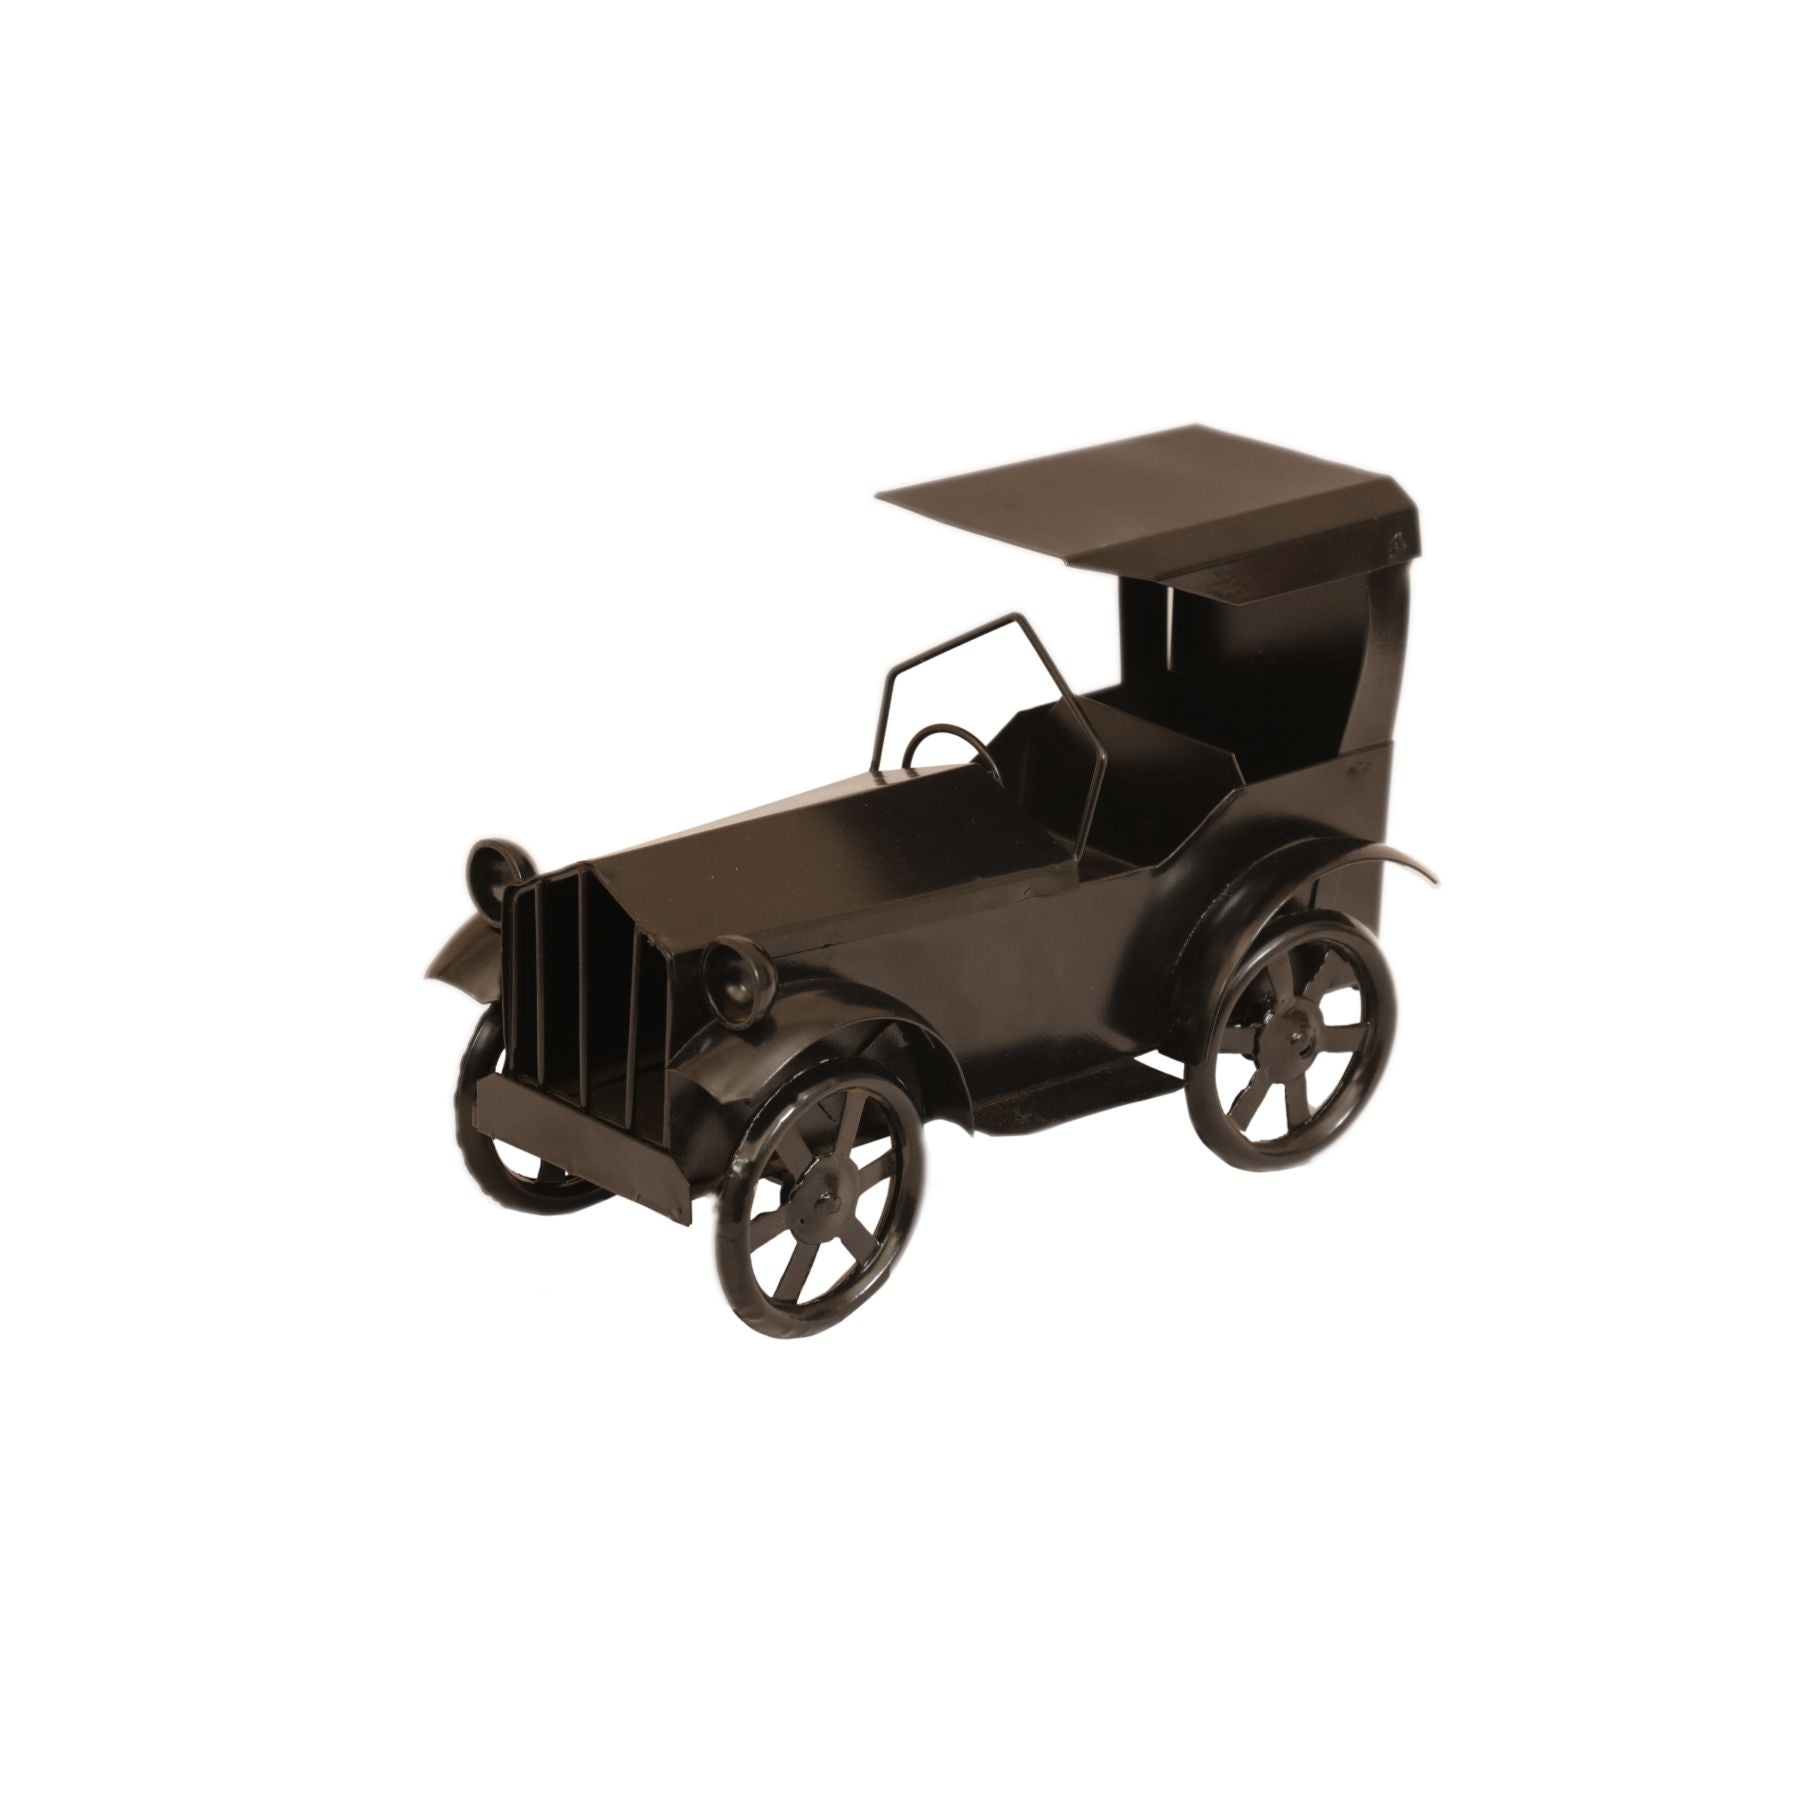 Pristine Metal Miniature Car - Woodsala